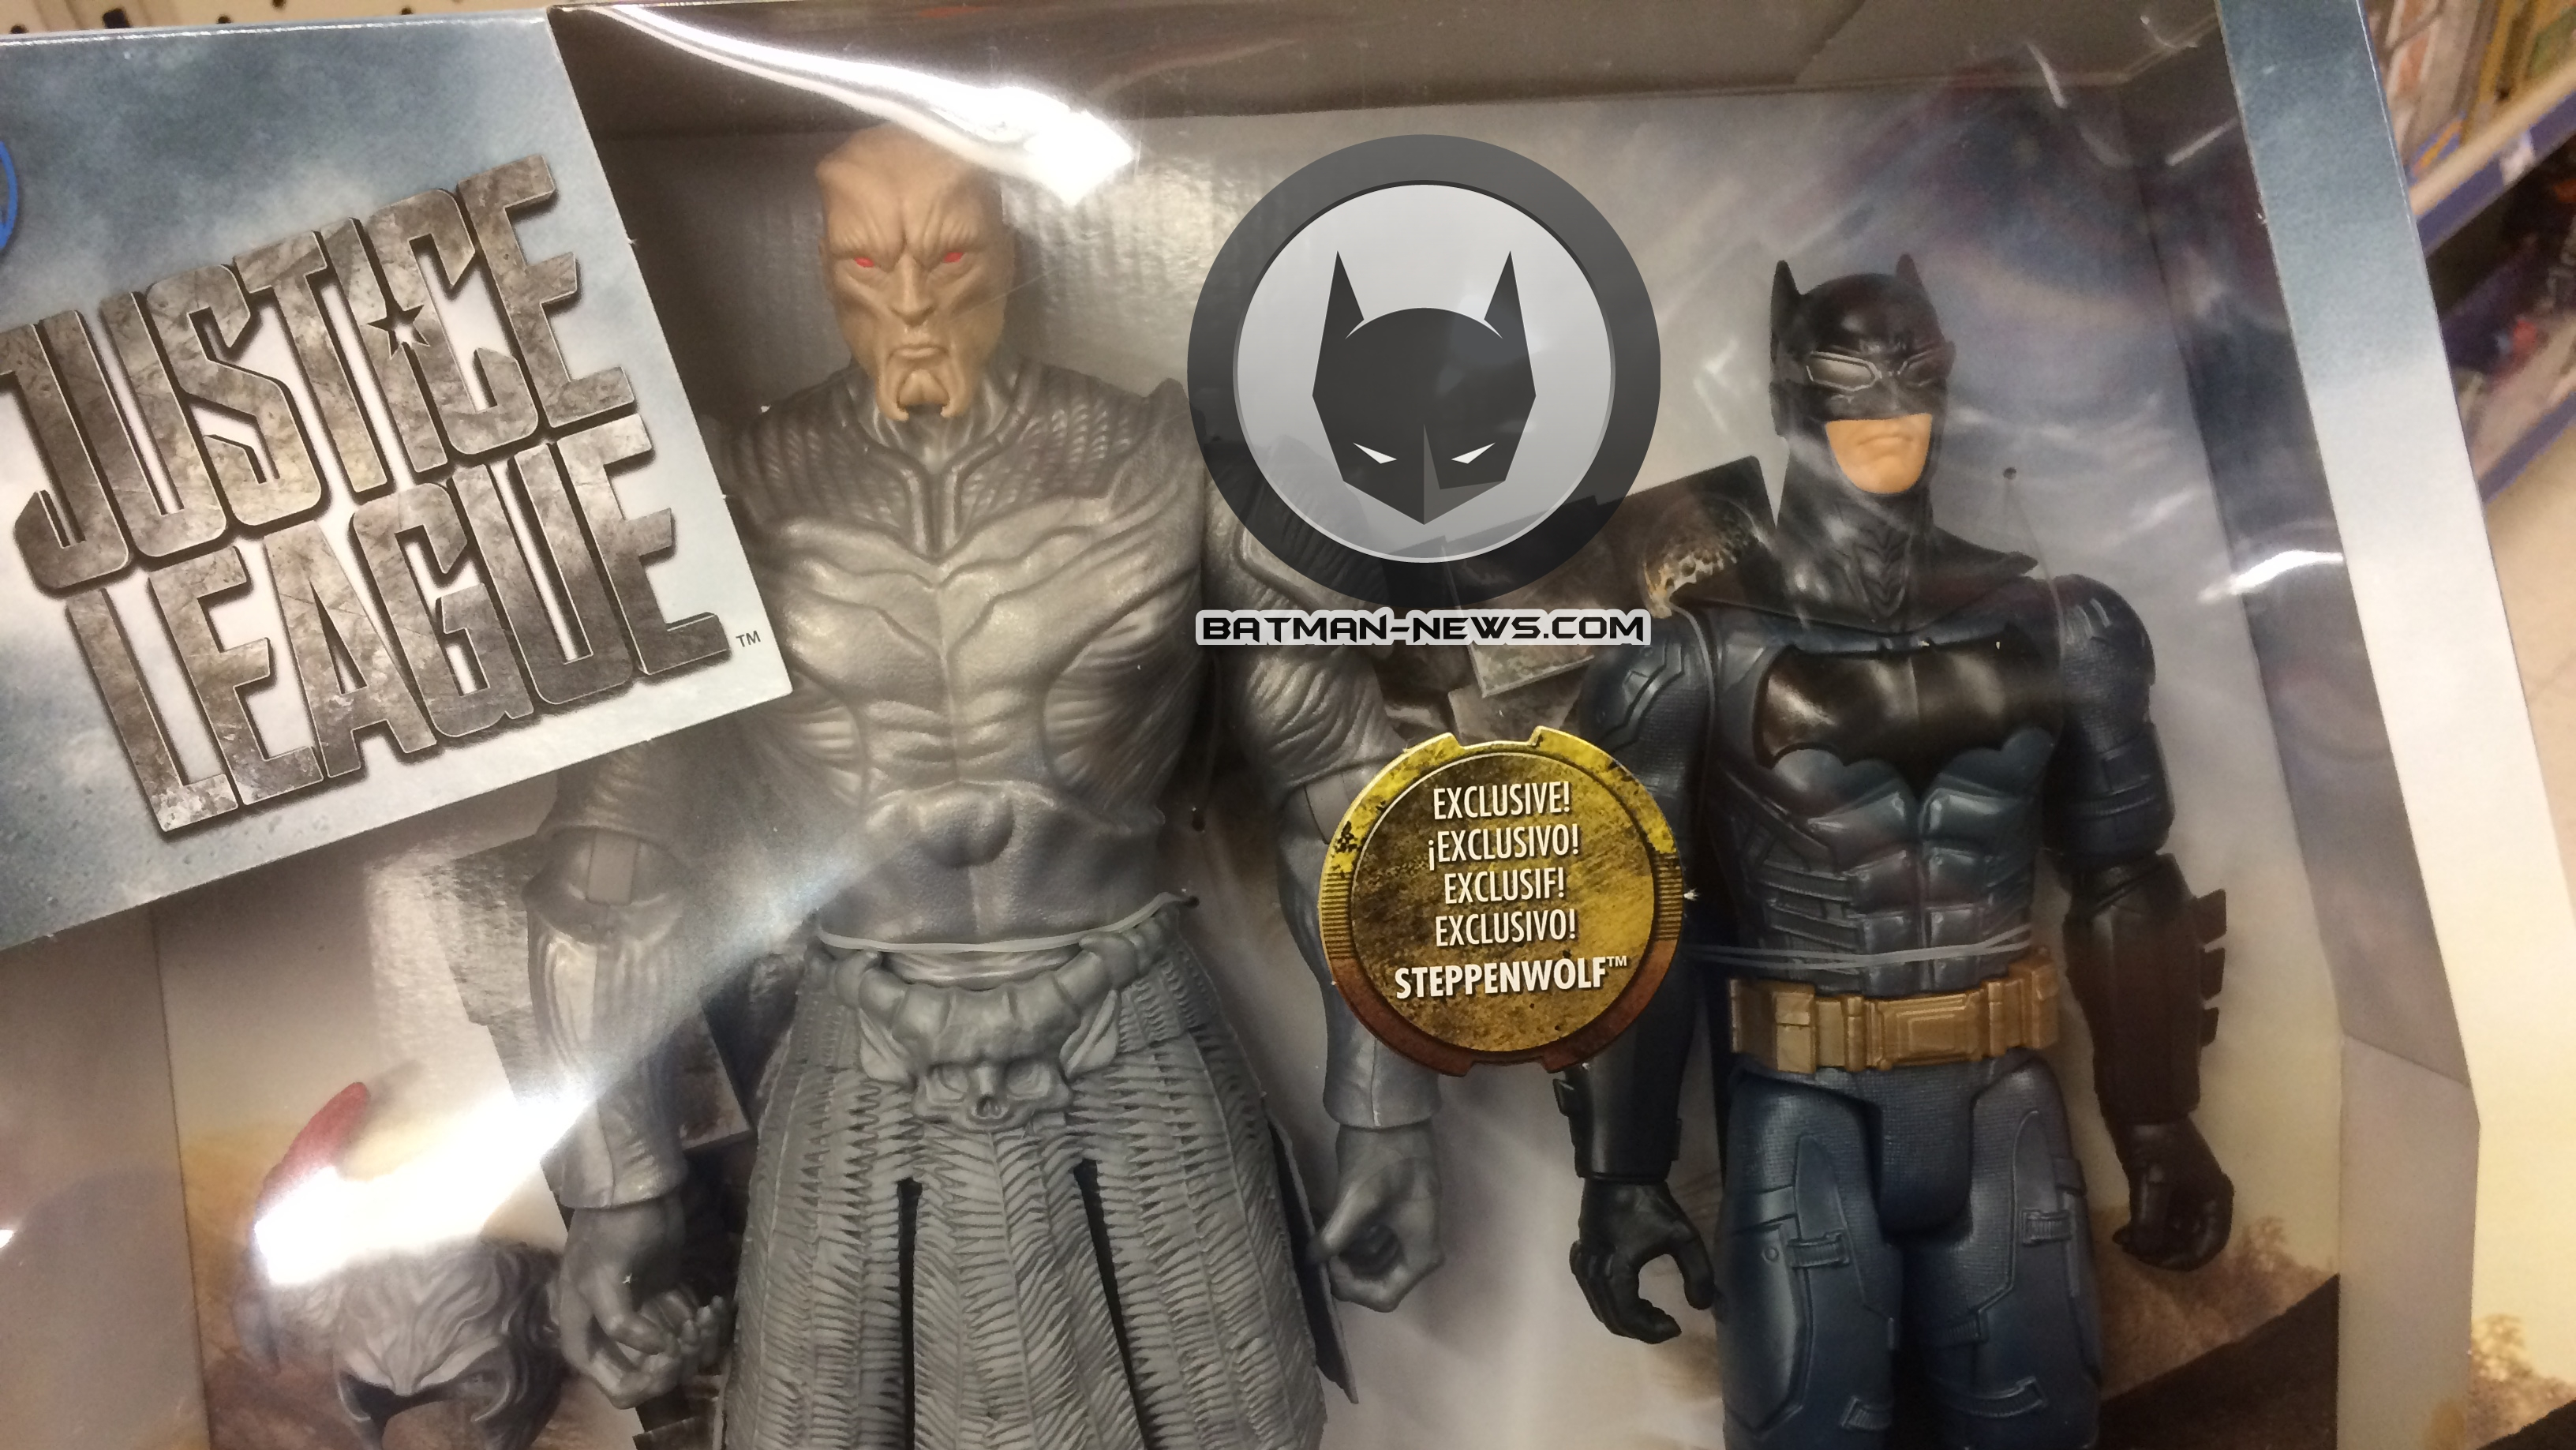 Exclusive Justice League Toy Gives Great Look At Villain Steppenwolf Batman News